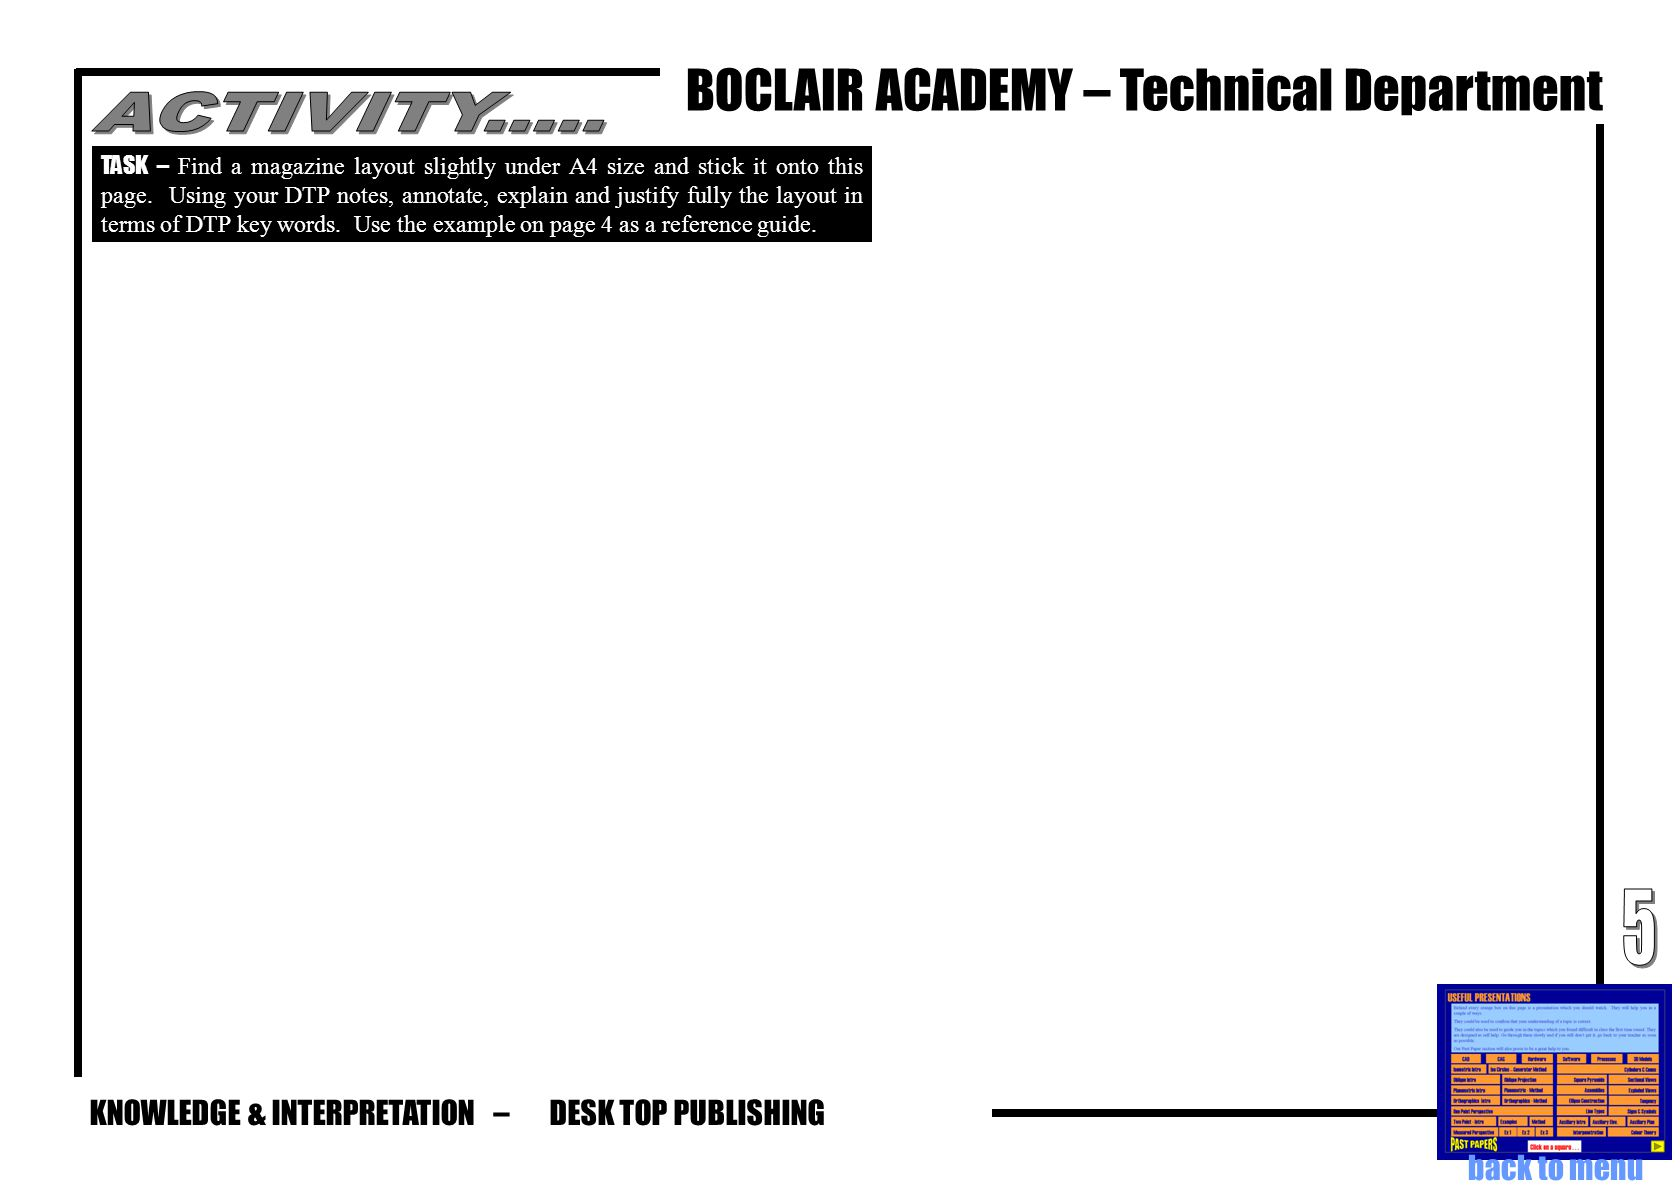 KNOWLEDGE & INTERPRETATION – BOCLAIR ACADEMY – Technical Department DESK TOP PUBLISHING TASK – Find a magazine layout slightly under A4 size and stick